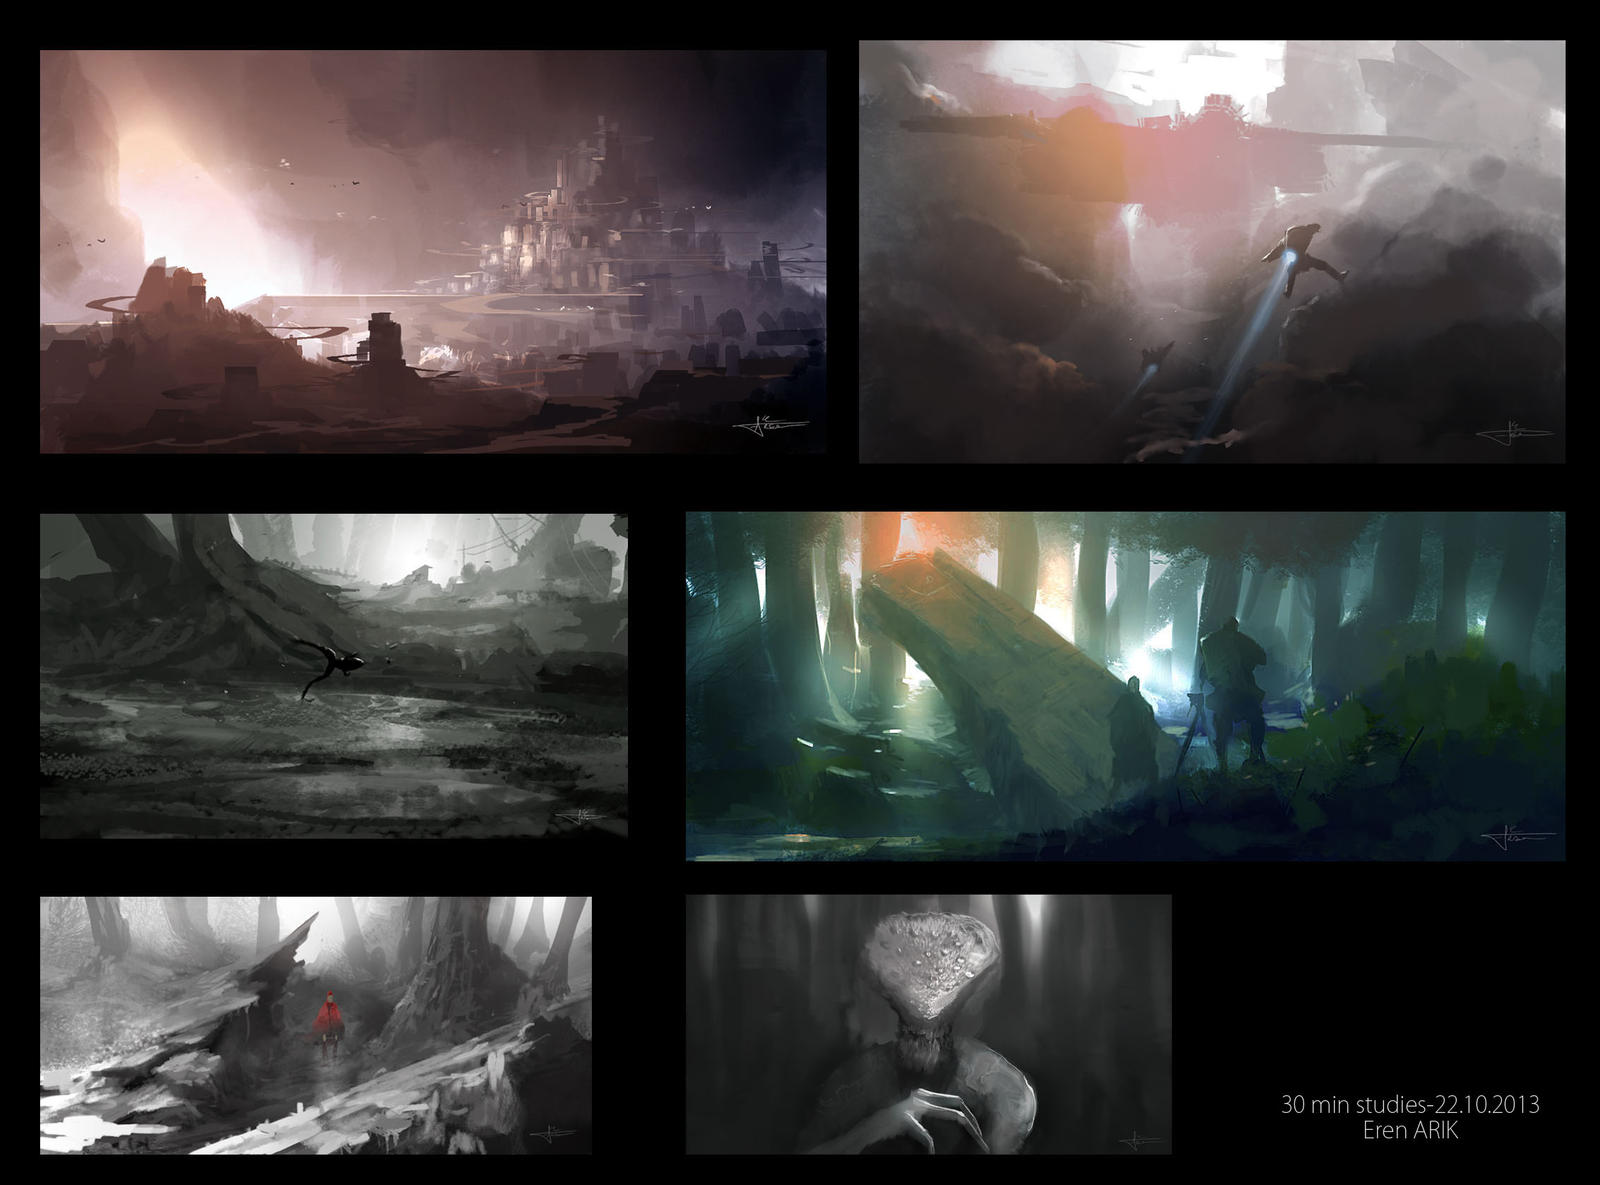 30Min studies 1 by erenarik